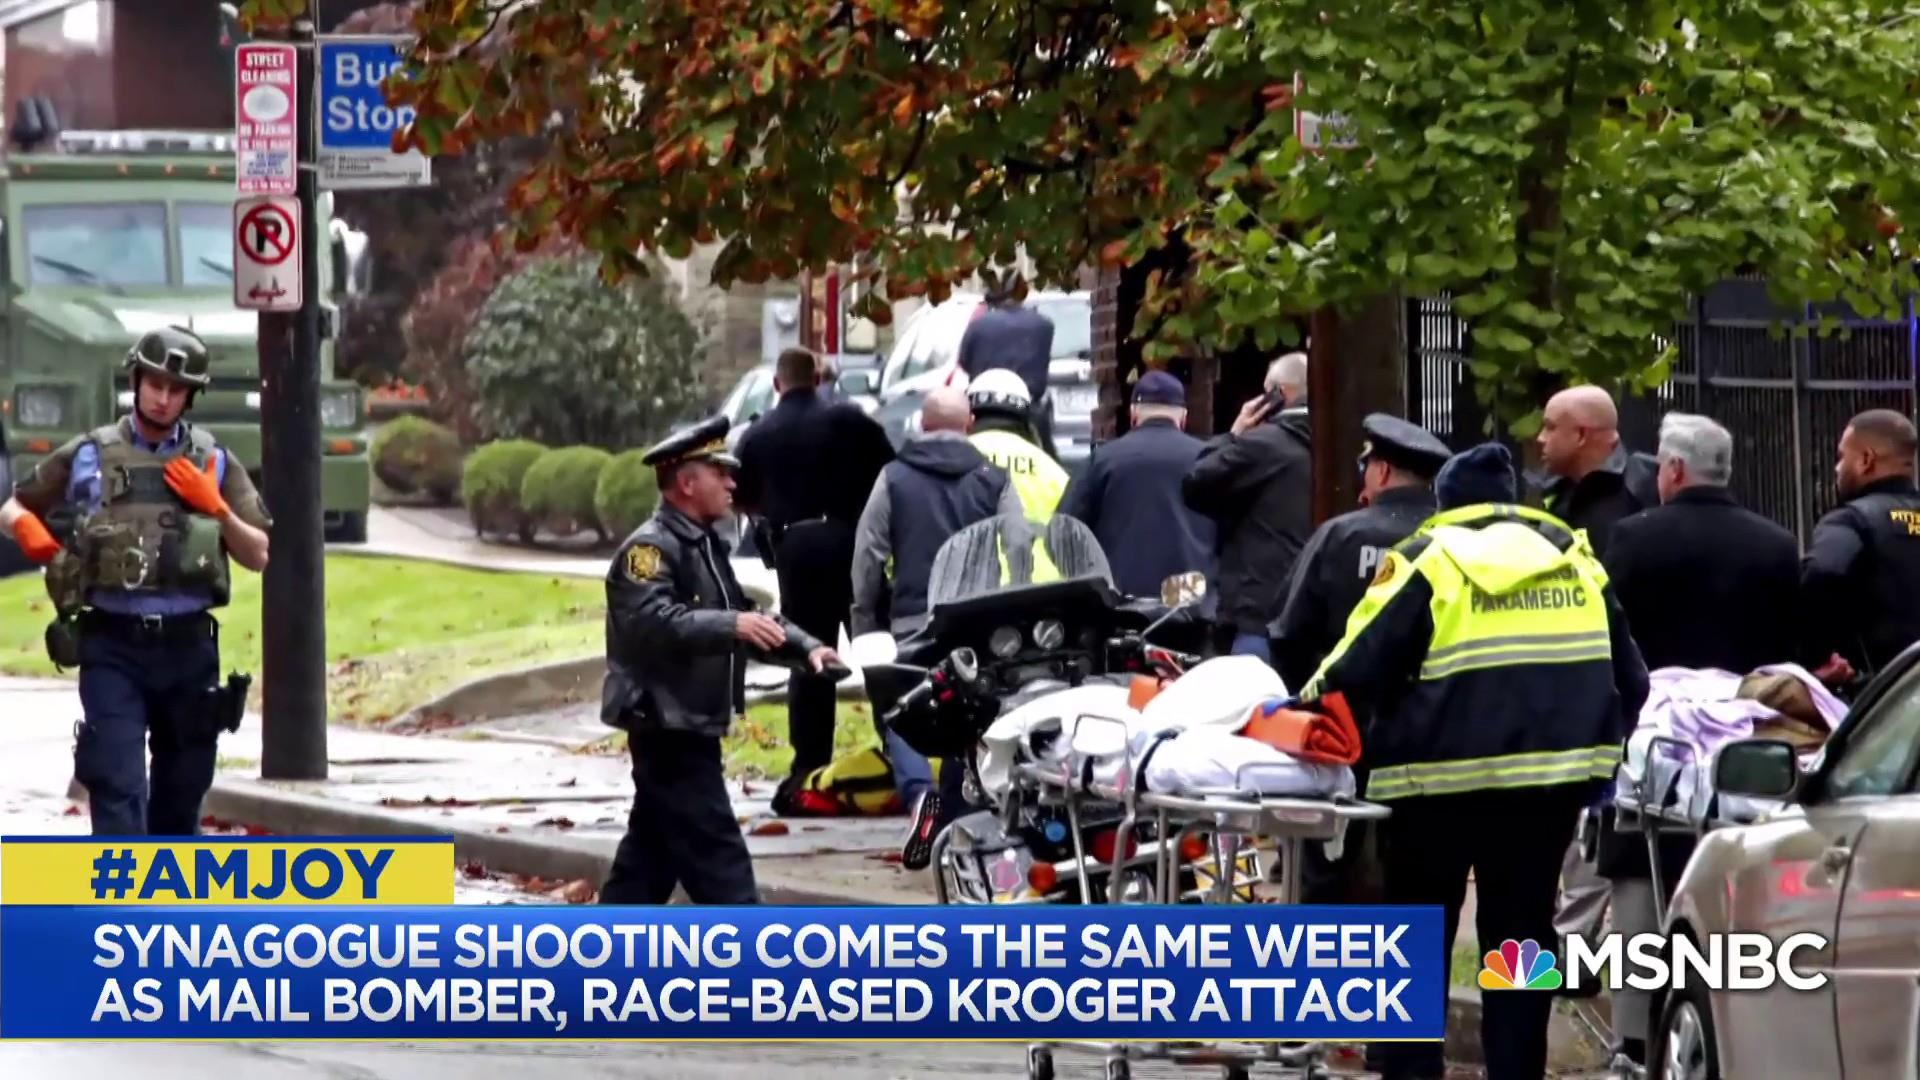 Synagogue shooting comes same week as mail bomber, race-based Kroger attacks